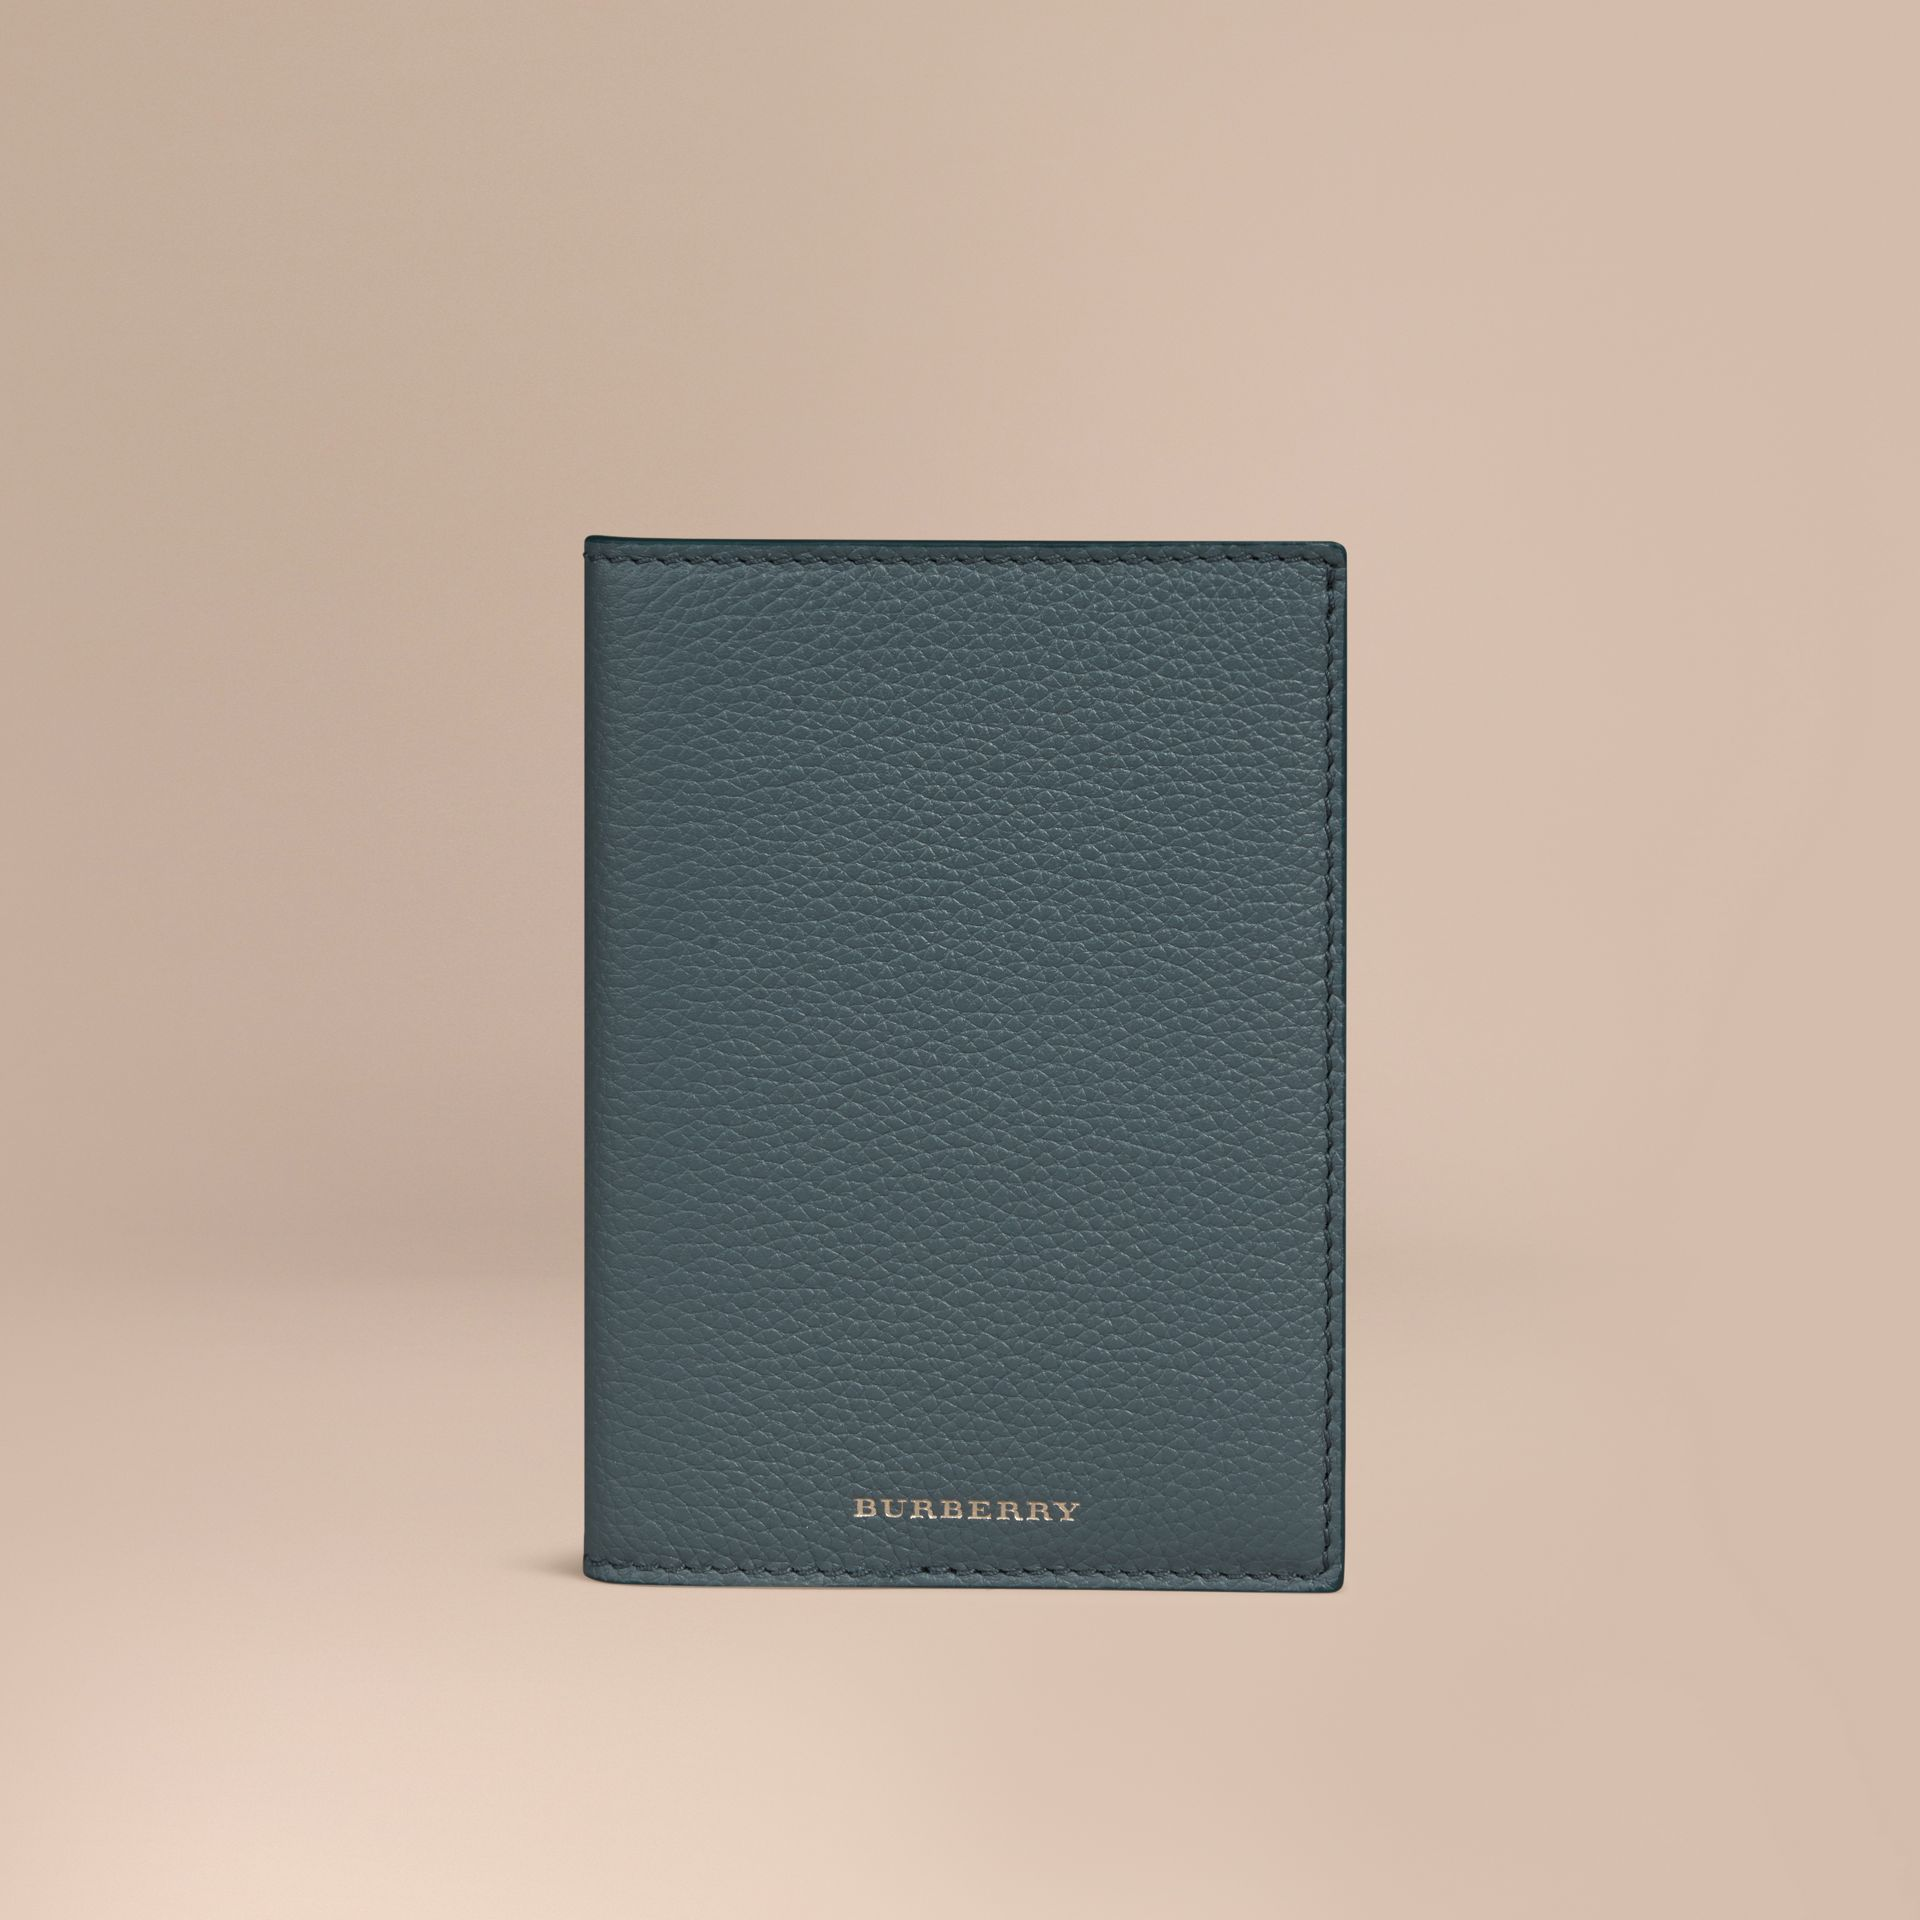 Grainy Leather Passport Cover in Dusty Teal | Burberry - gallery image 1